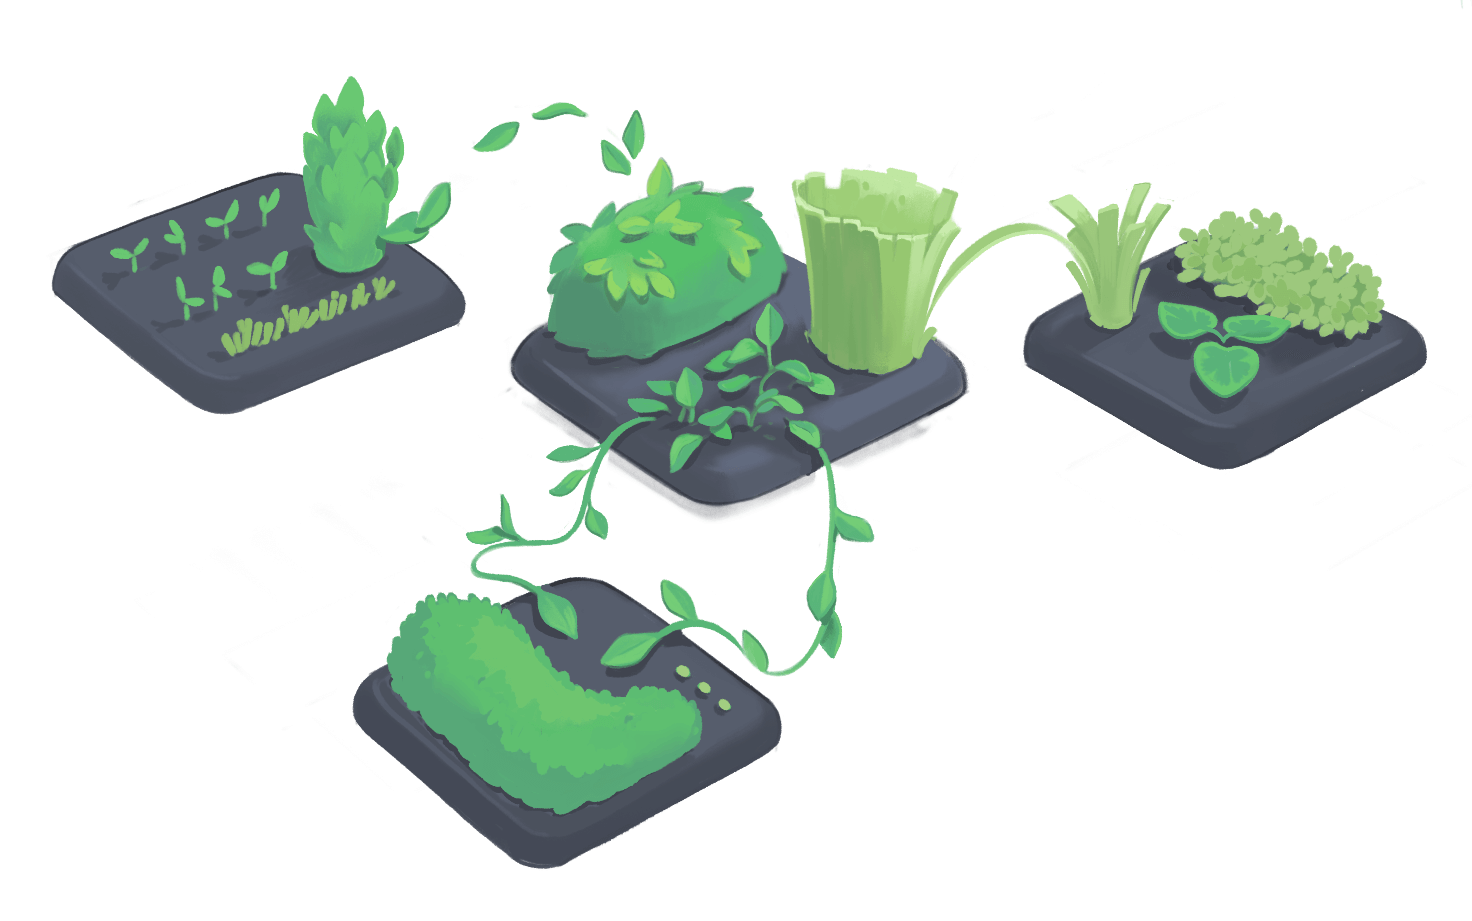 A set of gardens with plant life moving between them